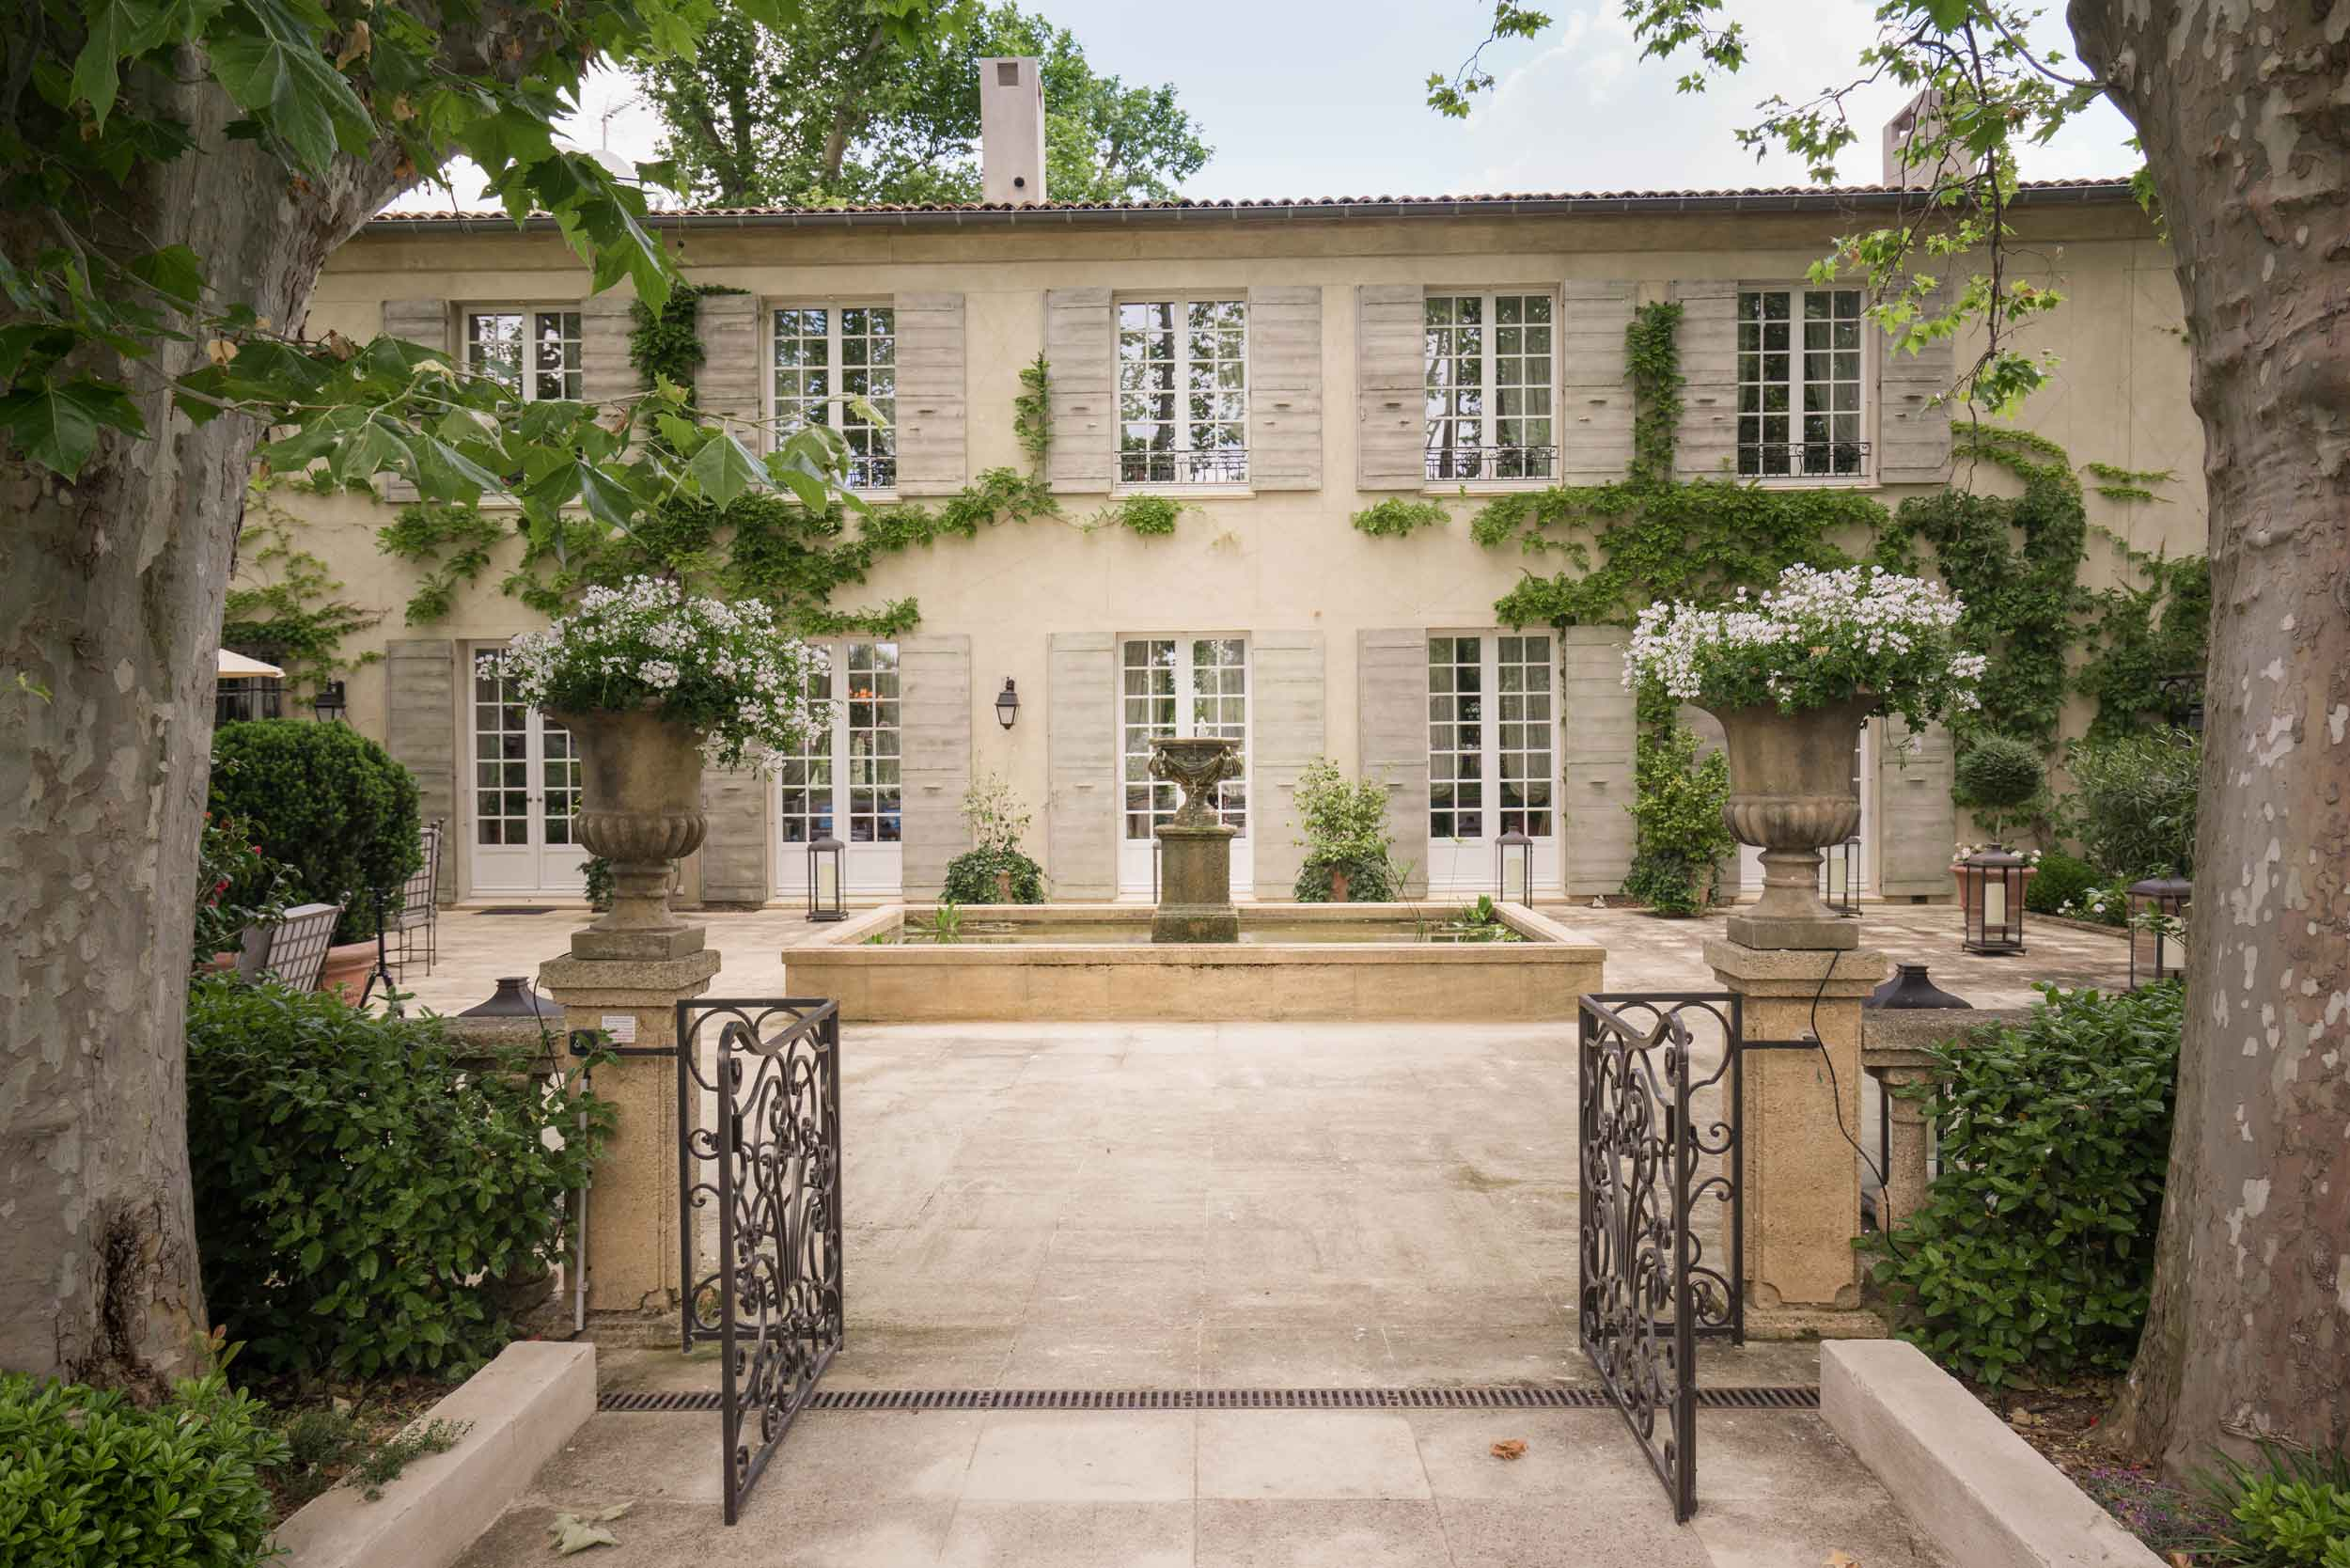 This 18th-century bastide just outside Aix-en-Provence captures the spirit and beauty of the region.